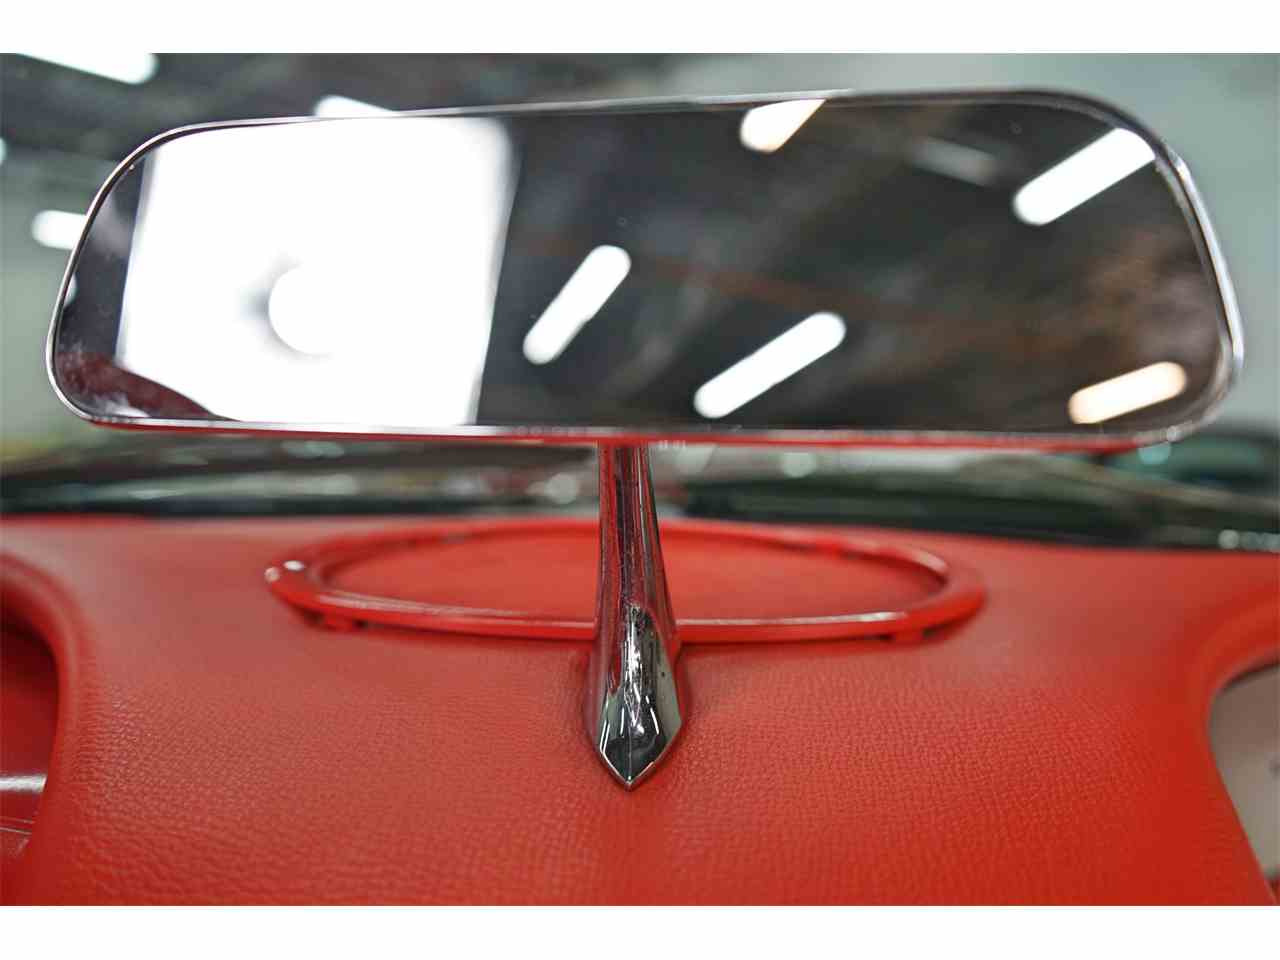 Large Picture of Classic 1958 Chevrolet Corvette located in Boise Idaho - $79,995.00 - NBDP